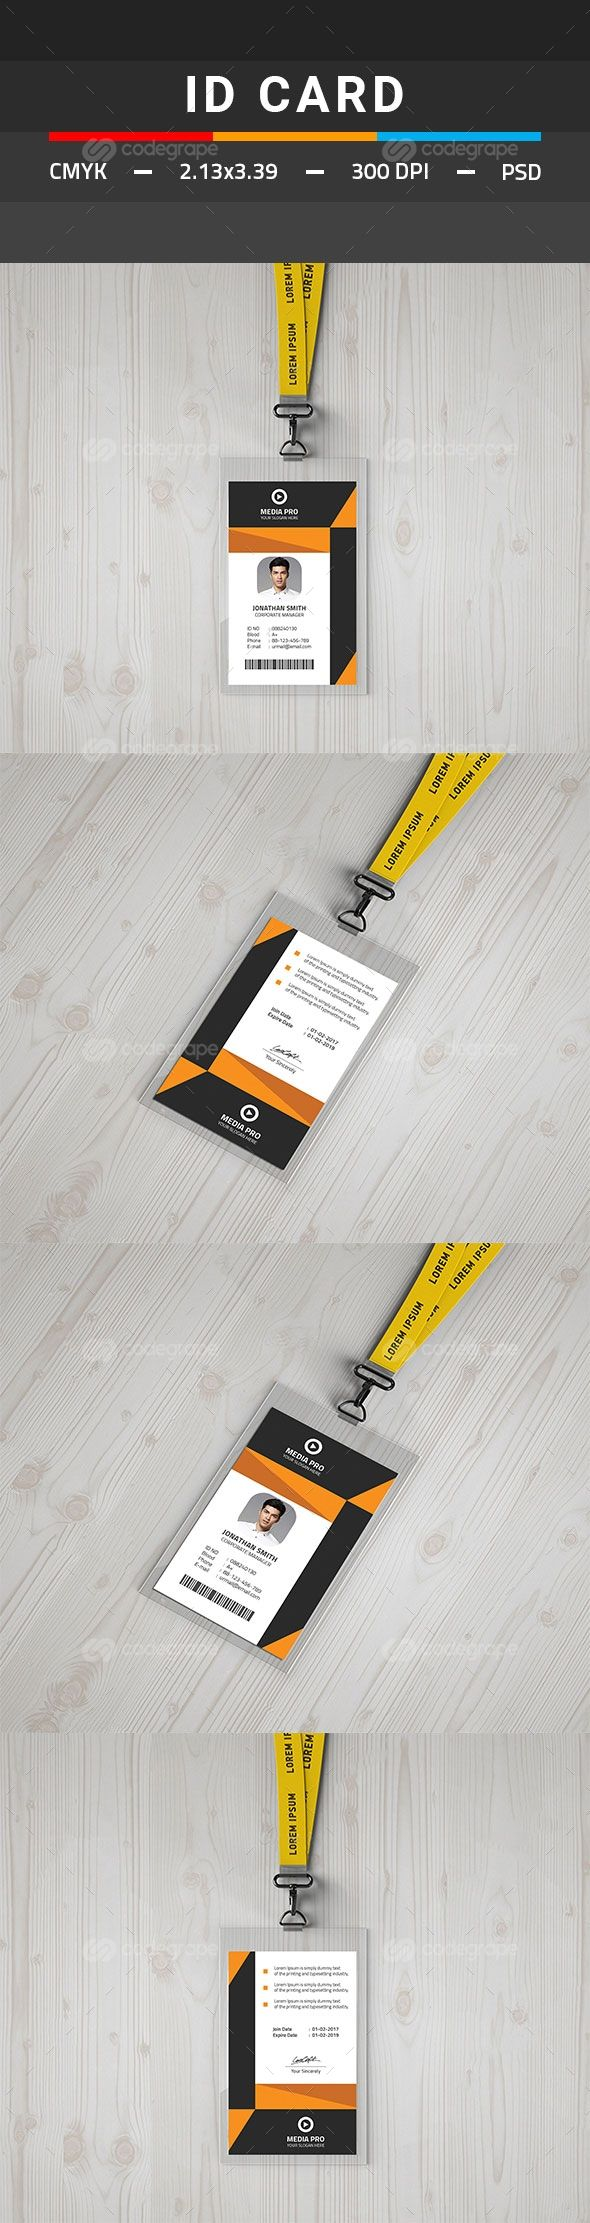 20 best employee\'s card images on Pinterest | Card patterns, Card ...